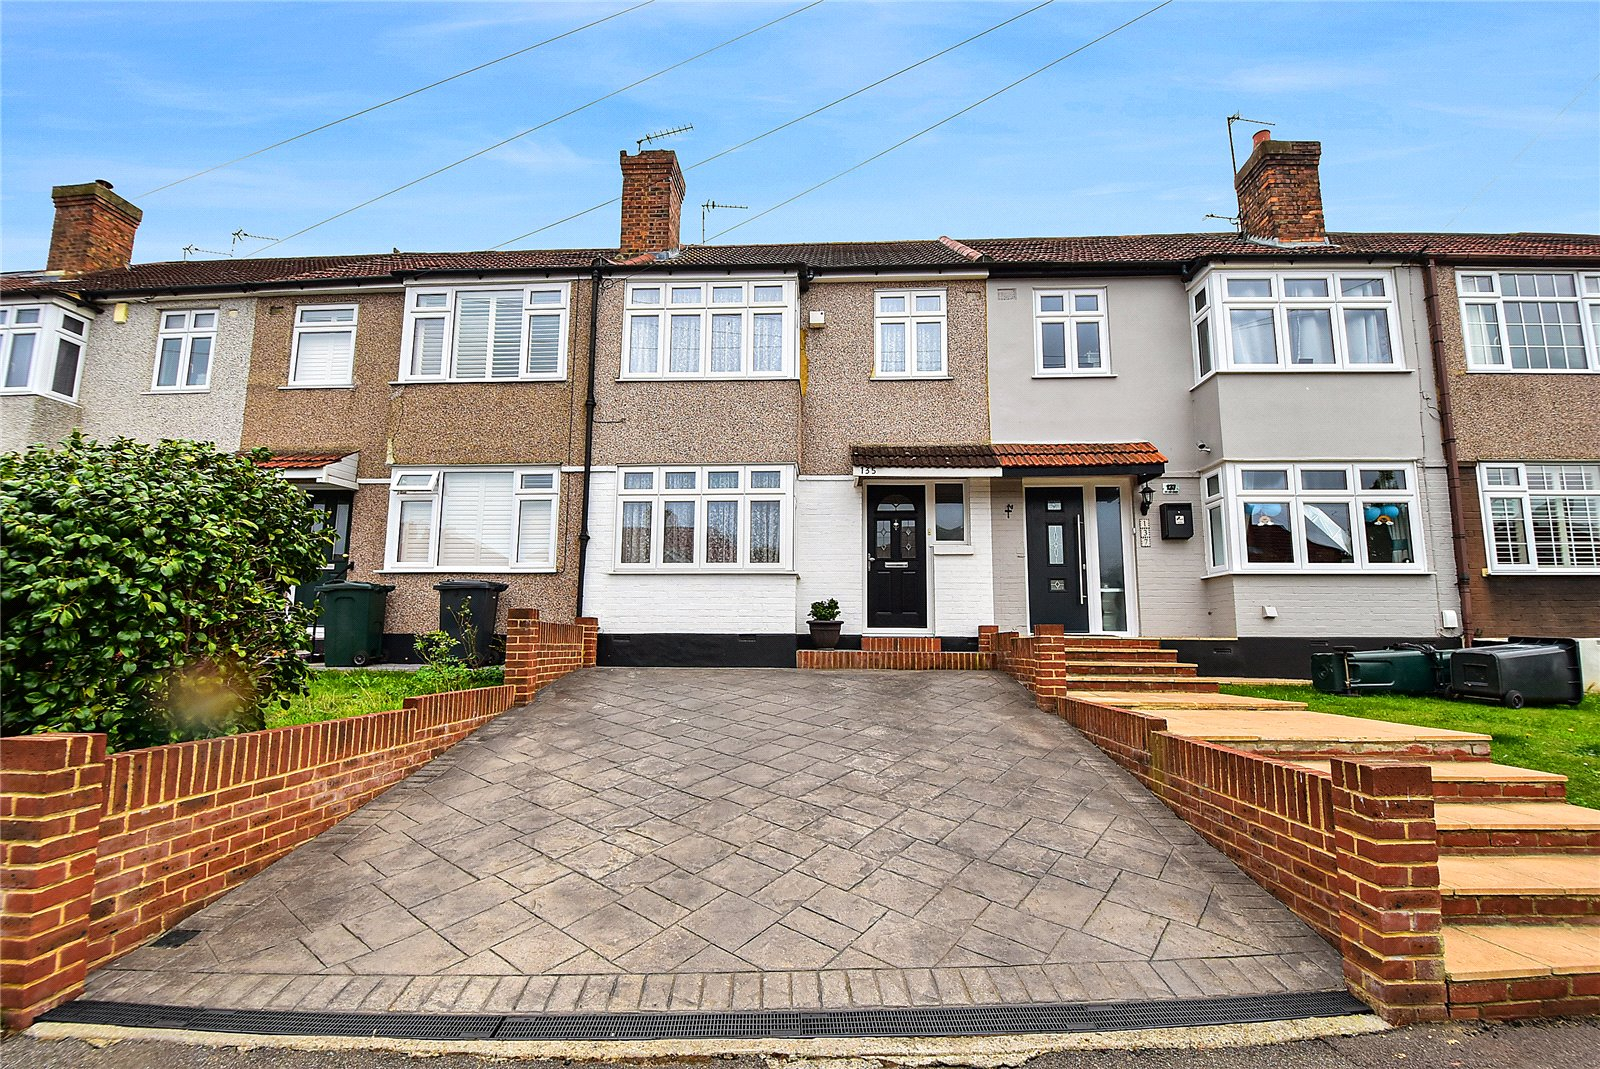 Wilmot Road, Dartford, Kent, DA1